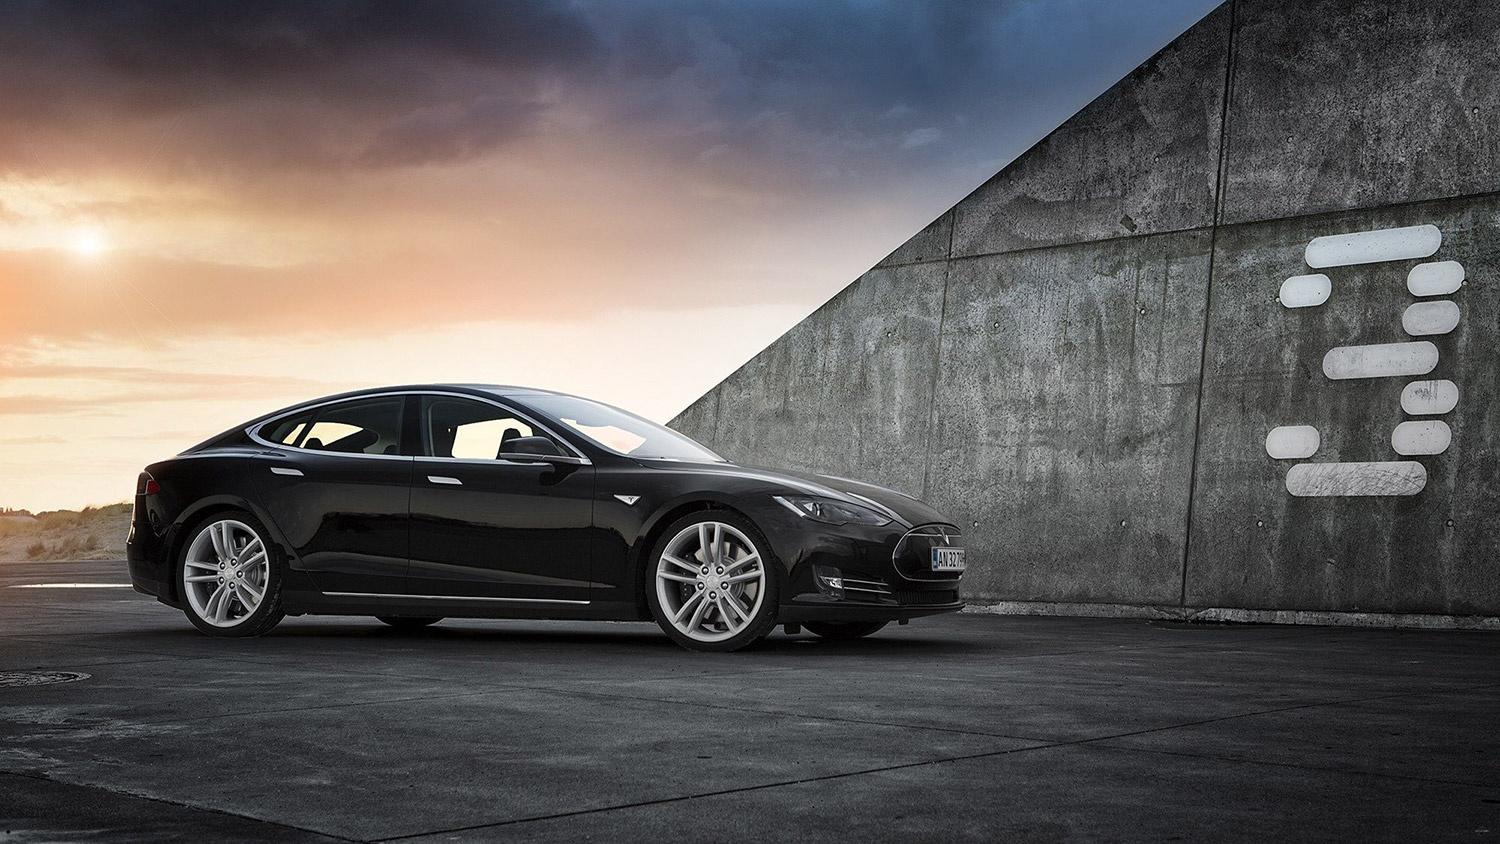 Tesla confirms (again) that the Model 3 will cost $35K before incentives